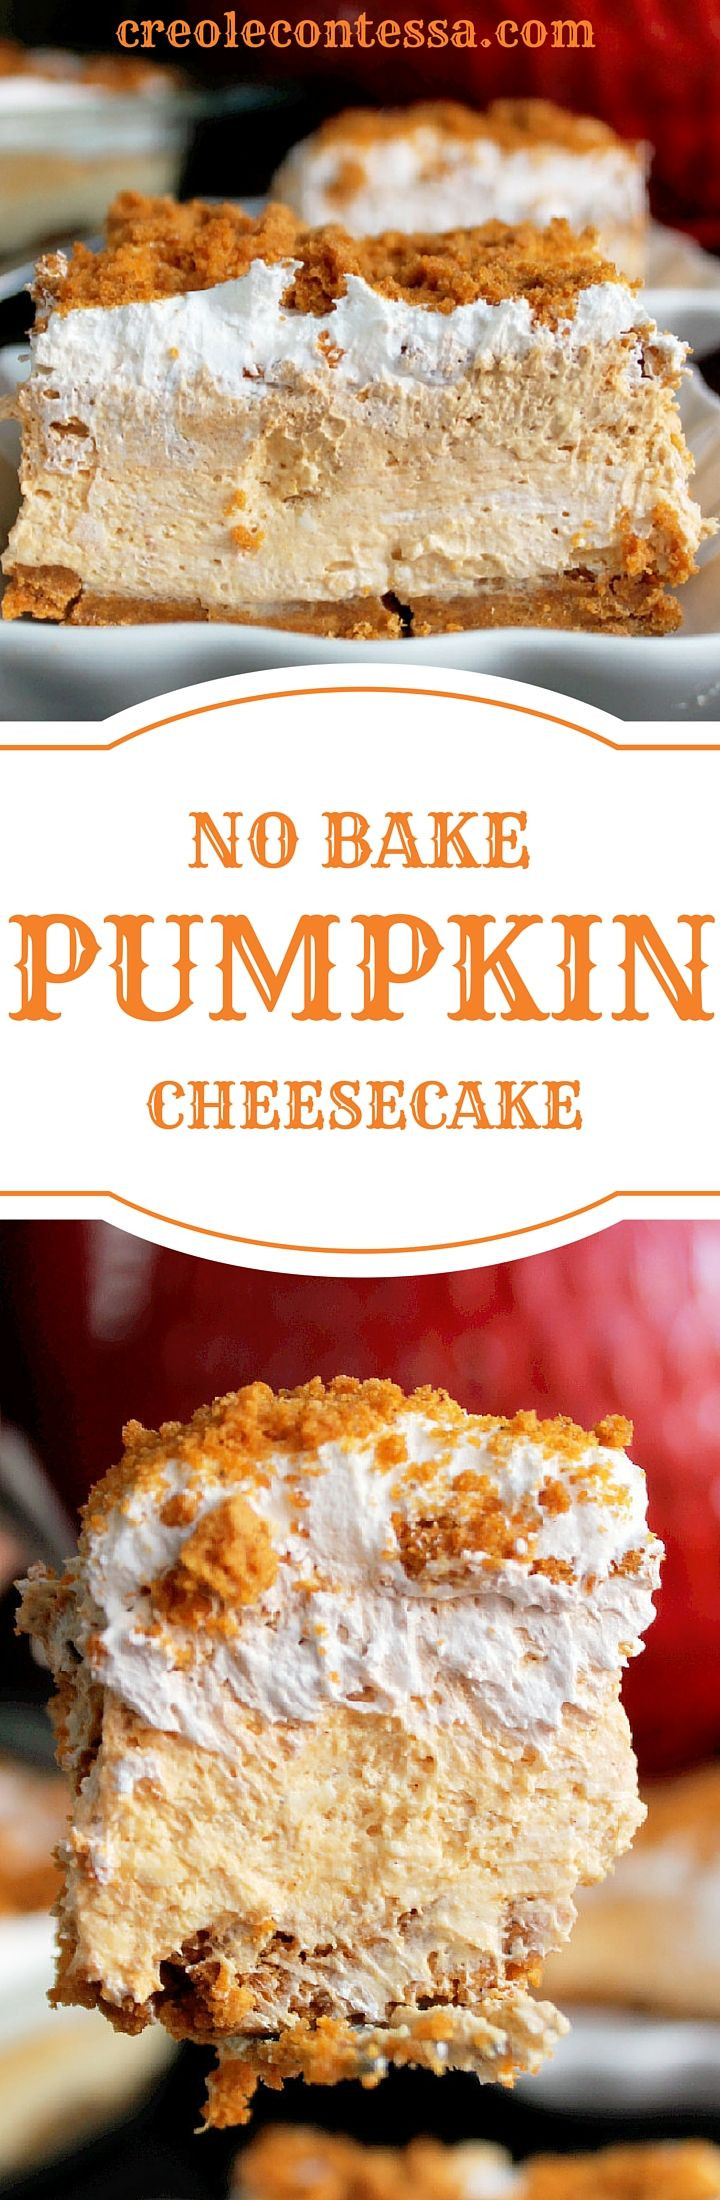 No Bake Pumpkin Cheesecake Lasagna is what I made for after dinner the other night.